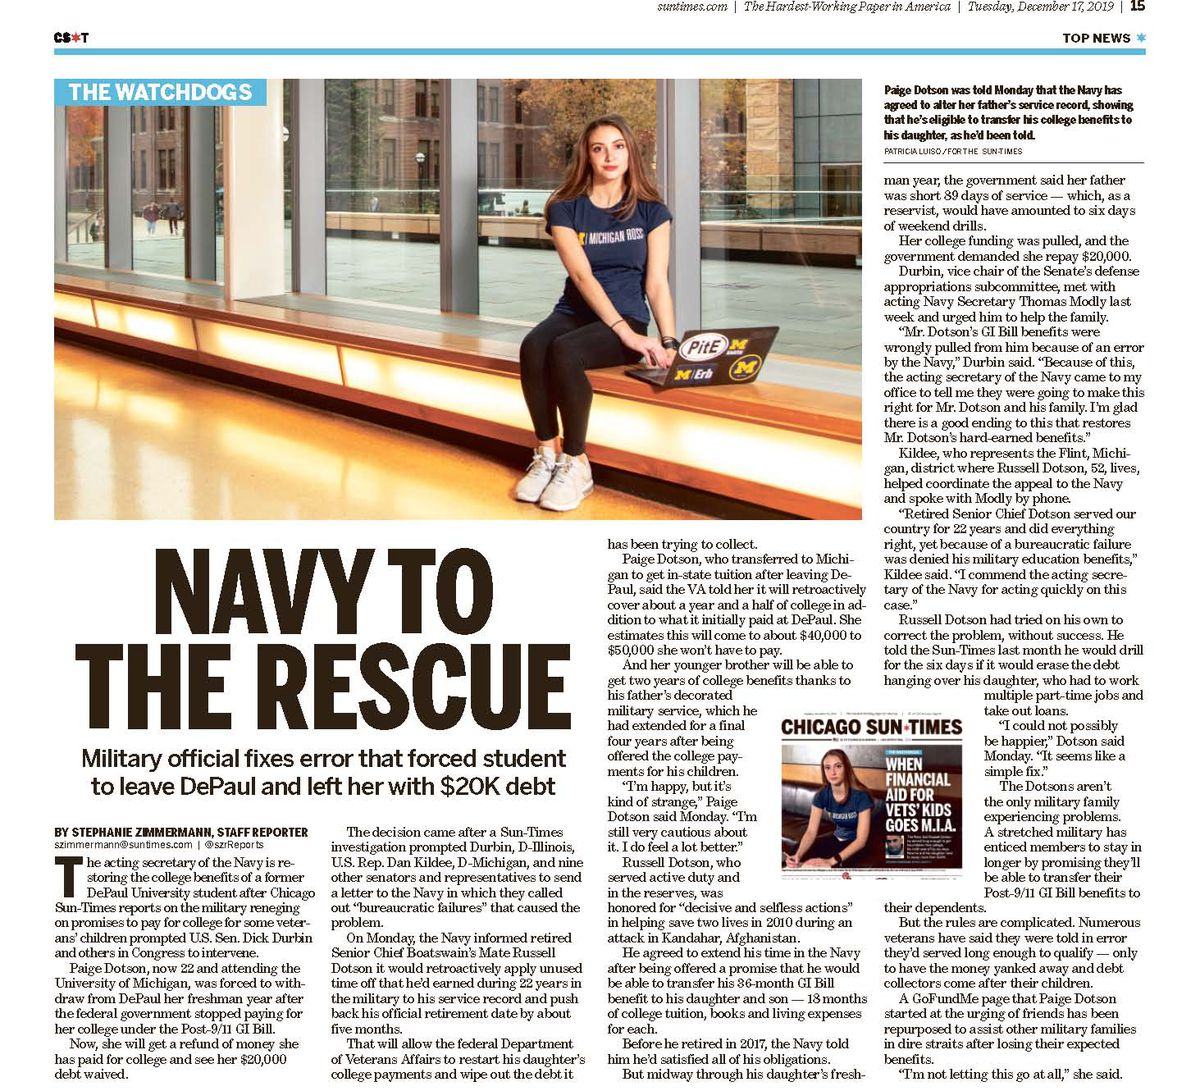 The Sun-Times' report Tuesday on the Navy fixing things for a former DePaul University student.